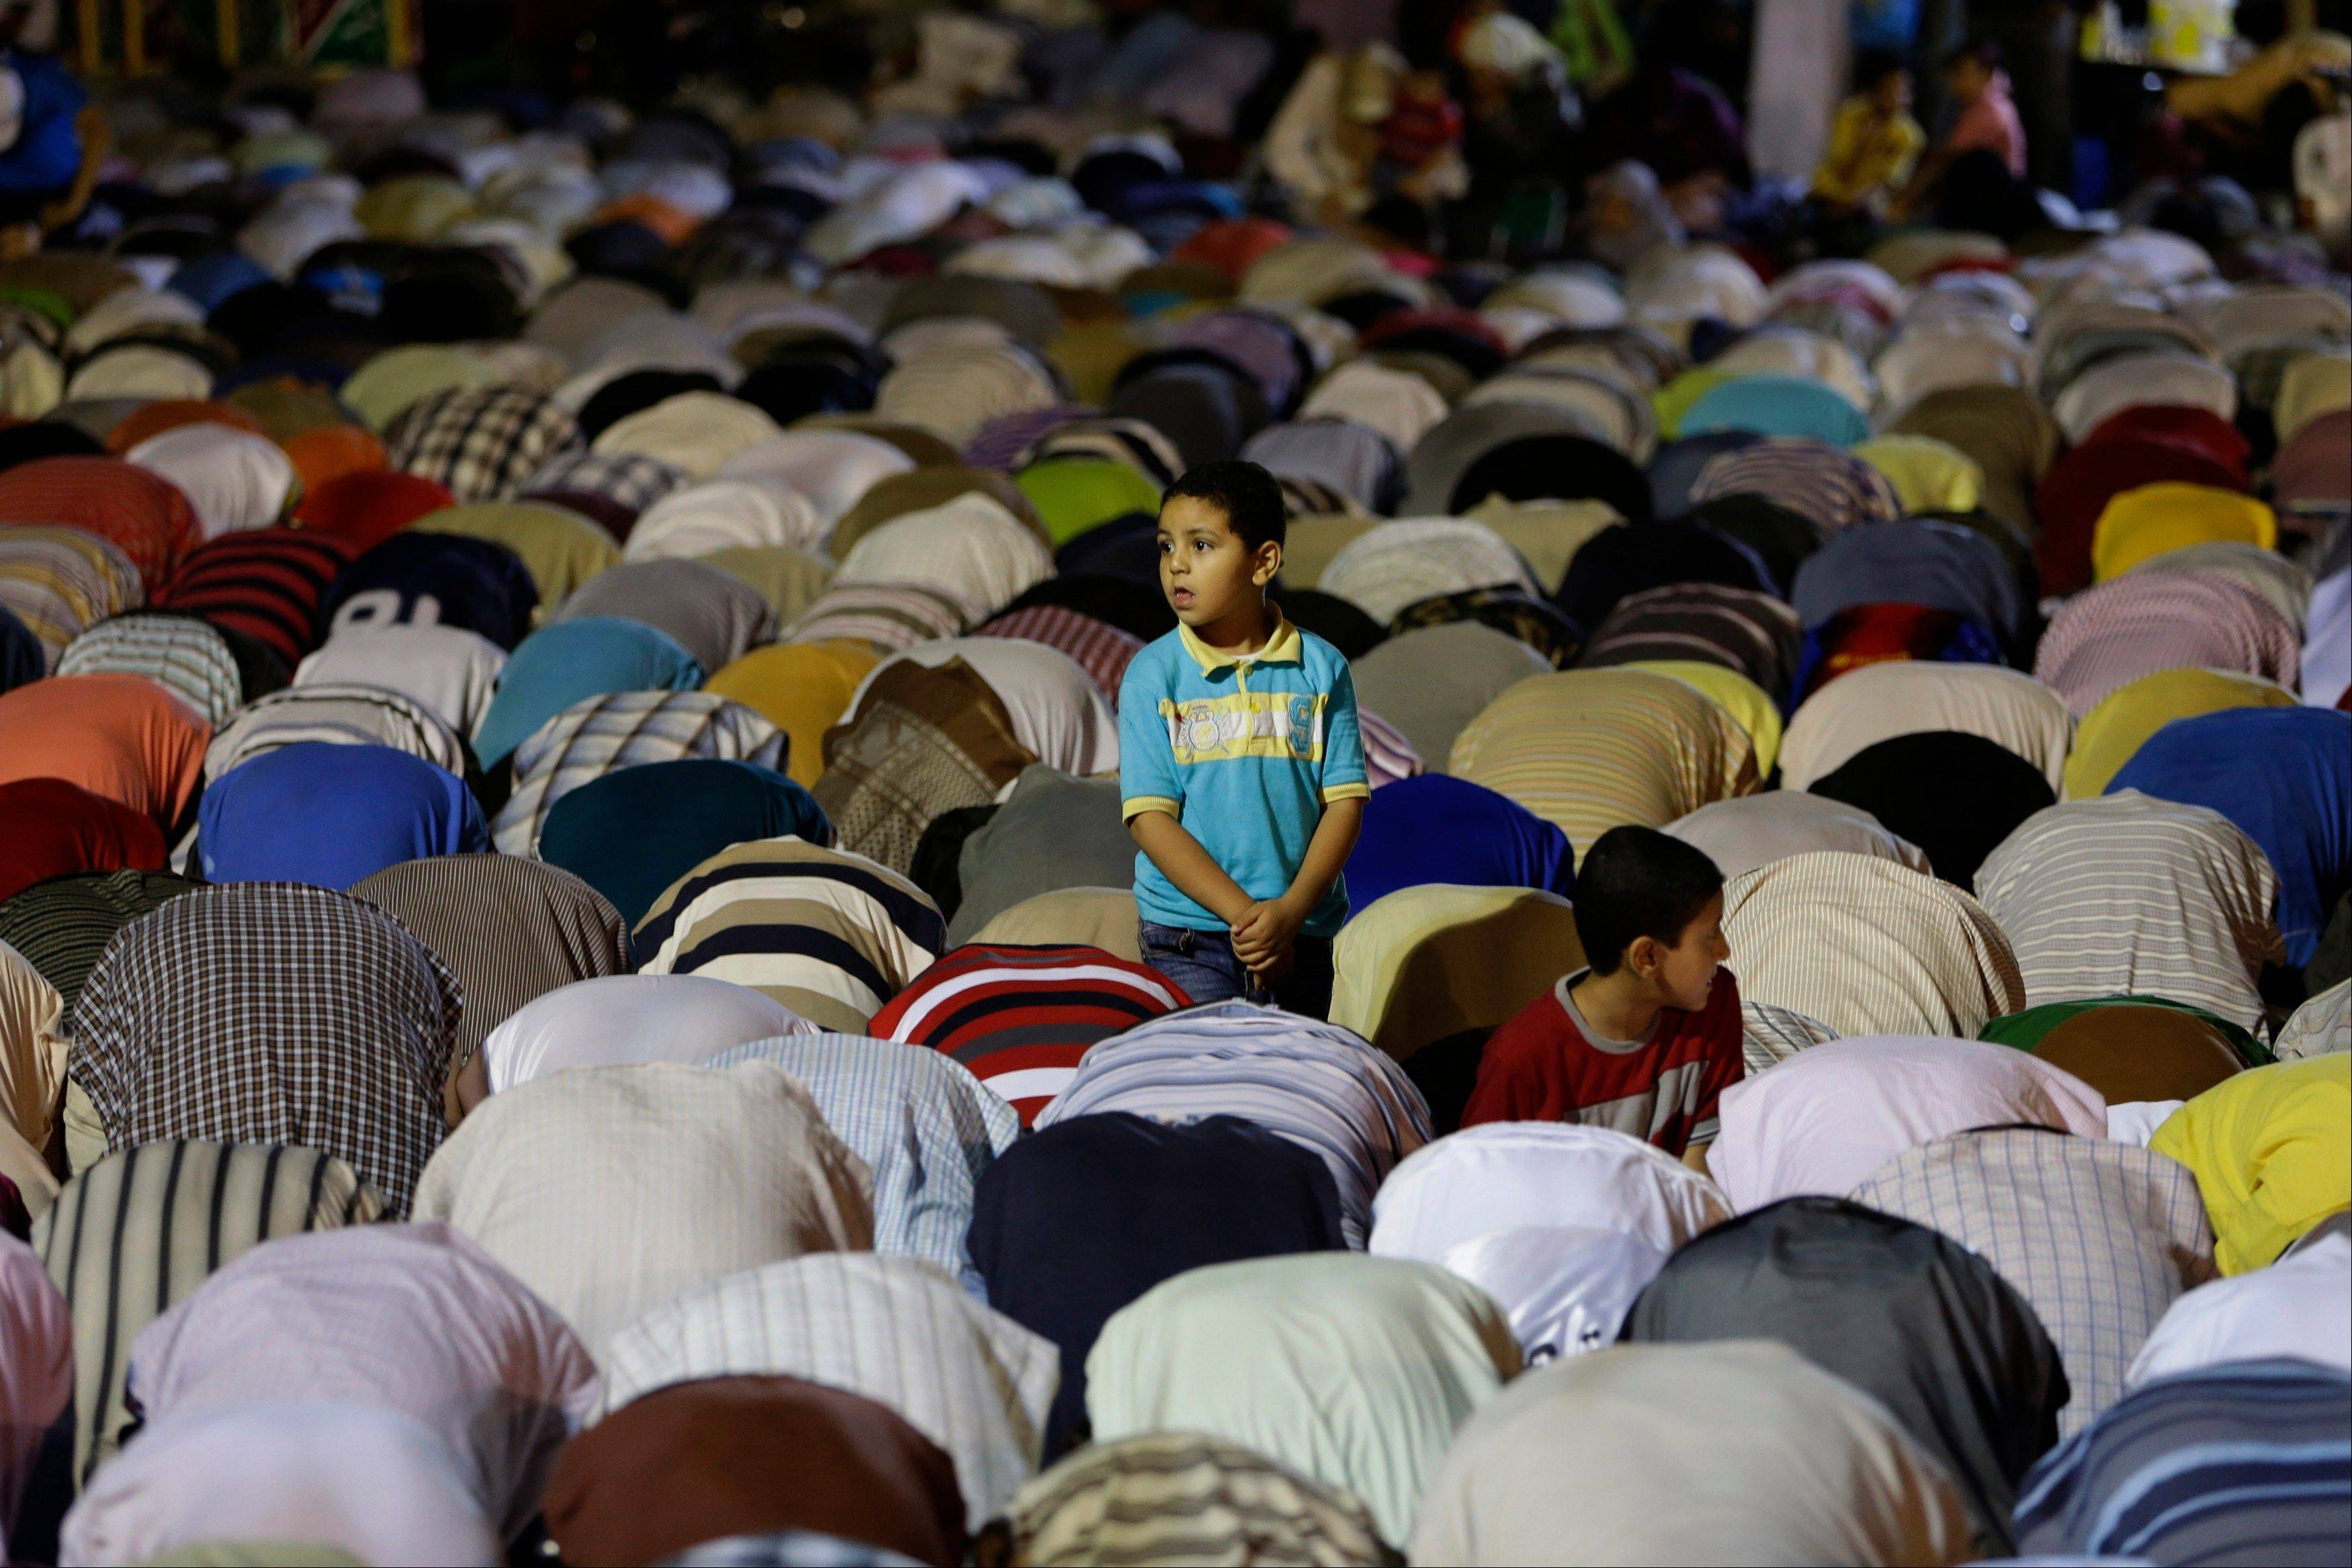 An Egyptian boy stands among the supporters of ousted Egypt�s President Mohammed Morsi, who are offering the Tarawih prayer, after the evening meal when Muslims break their fast during the Islamic month of Ramadan, in Nasr City, Cairo, Egypt, Wednesday July 10, 2013.